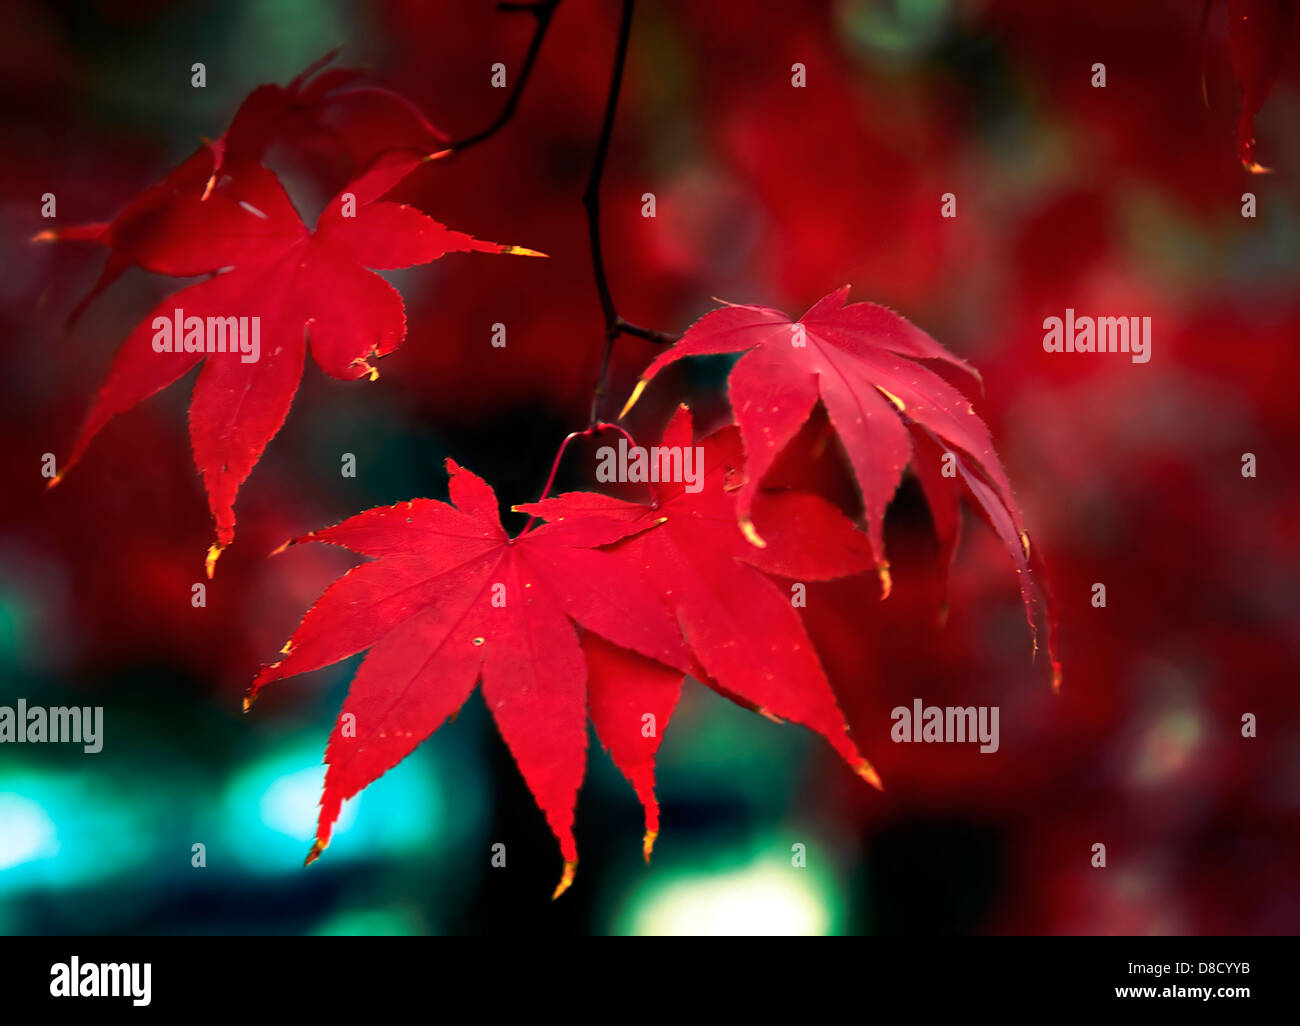 Closeup of a cluster of bright red leaves on a Japanese maple tree in a Virginia garden.  Blurred background behind - Stock Image